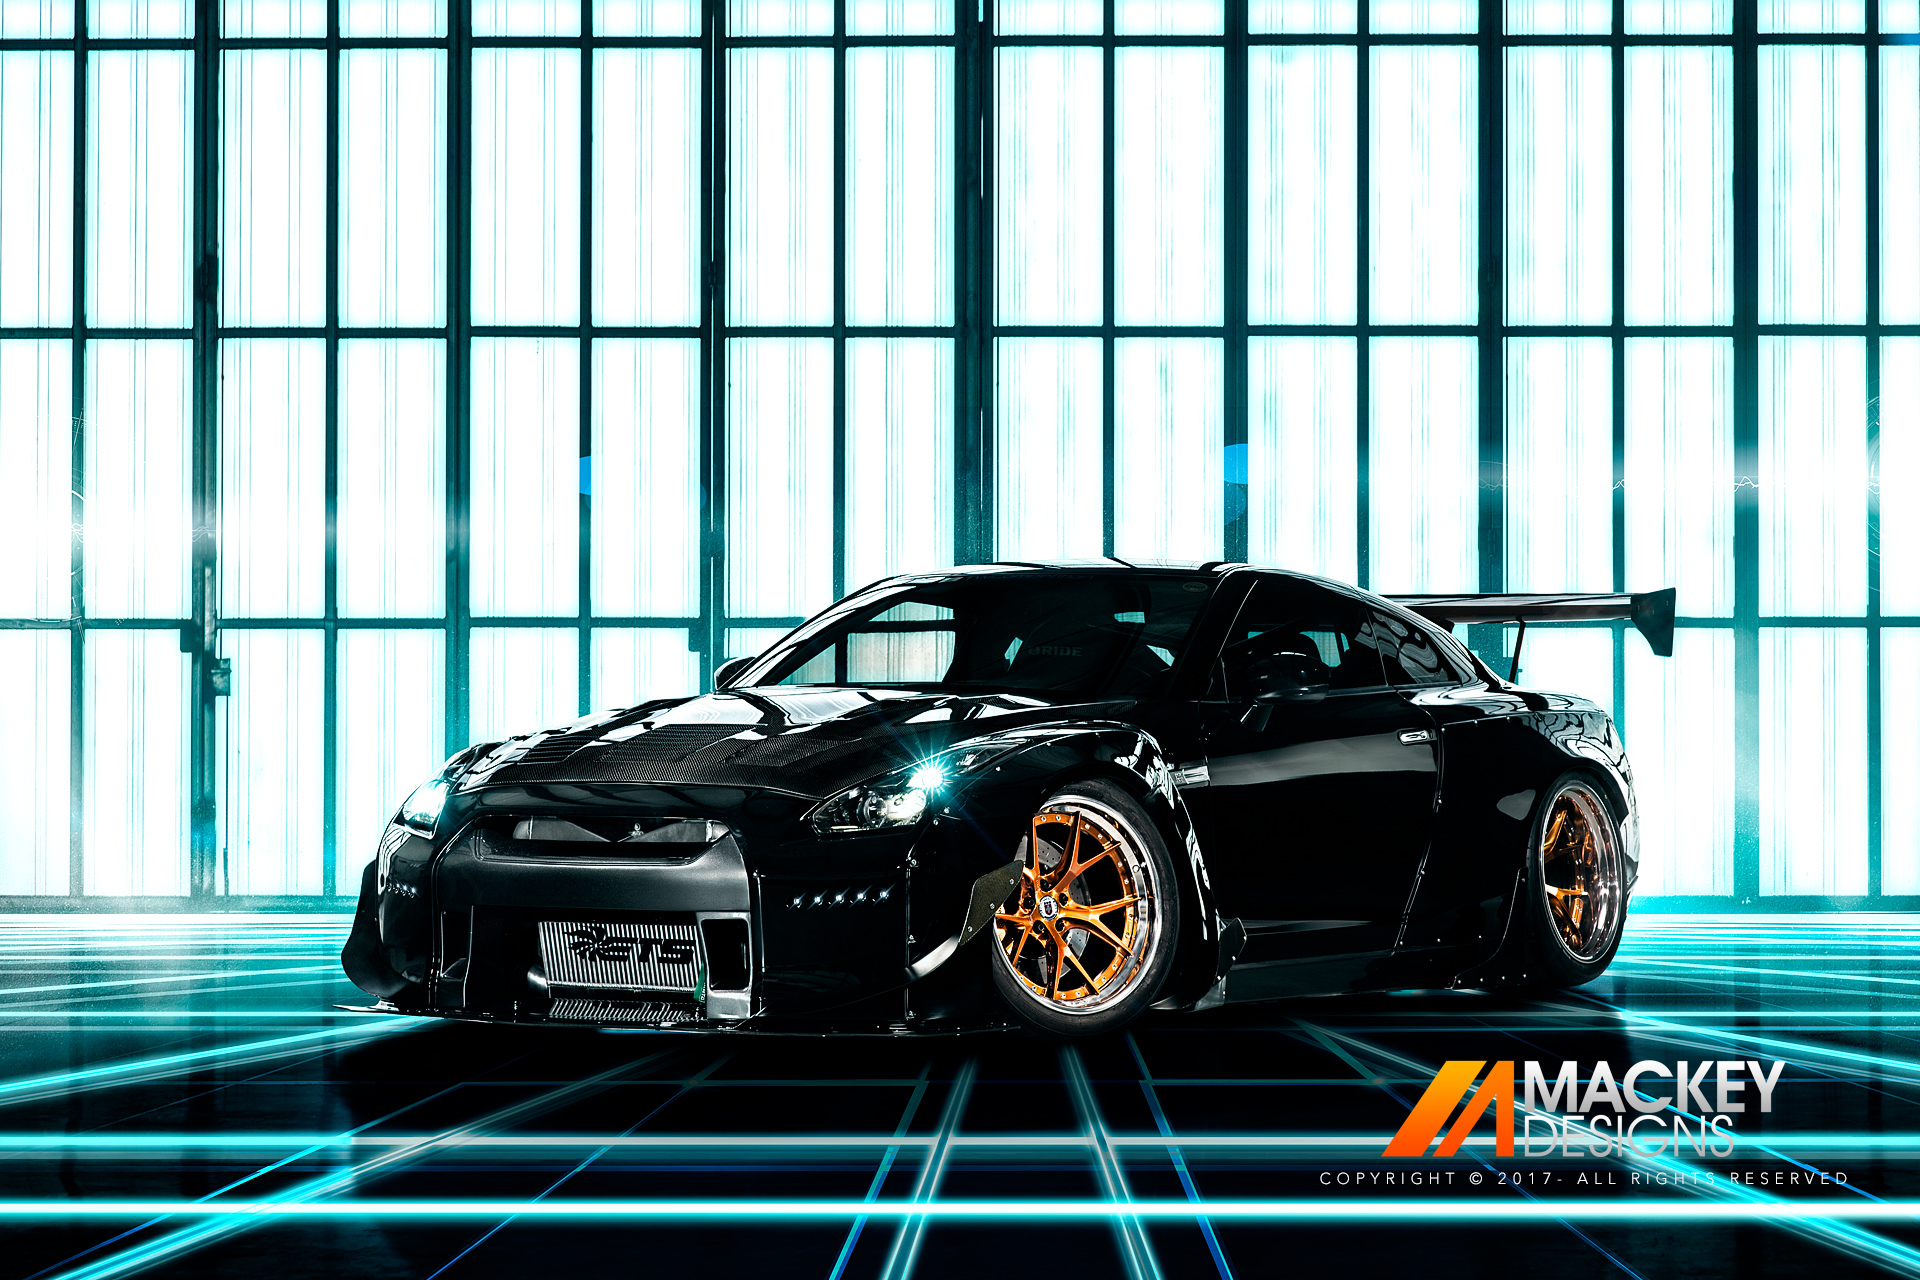 Automotive Photographer - Seattle - Josh Mackey - Rocket Bunny Nissan R35 GTR